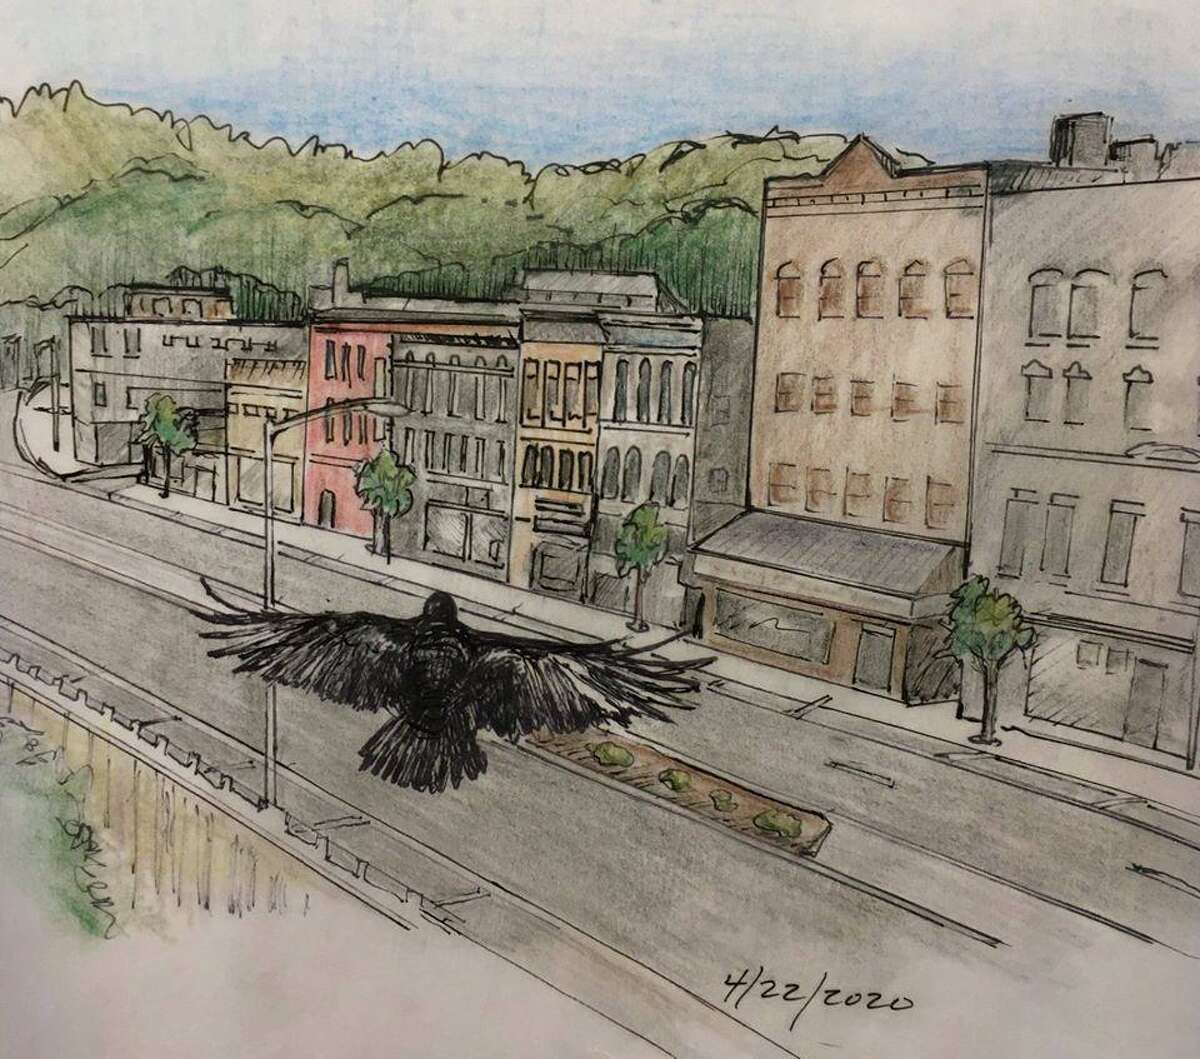 Artist Gay Schempp has created a series of drawings featuring a crow or crows living with the coronavirus. Schempp, who has a studio in Whiting Mills in Winsted, says she satisfied her need to create with the sketches since she has to work from home, and has done more than 30 drawings so far.